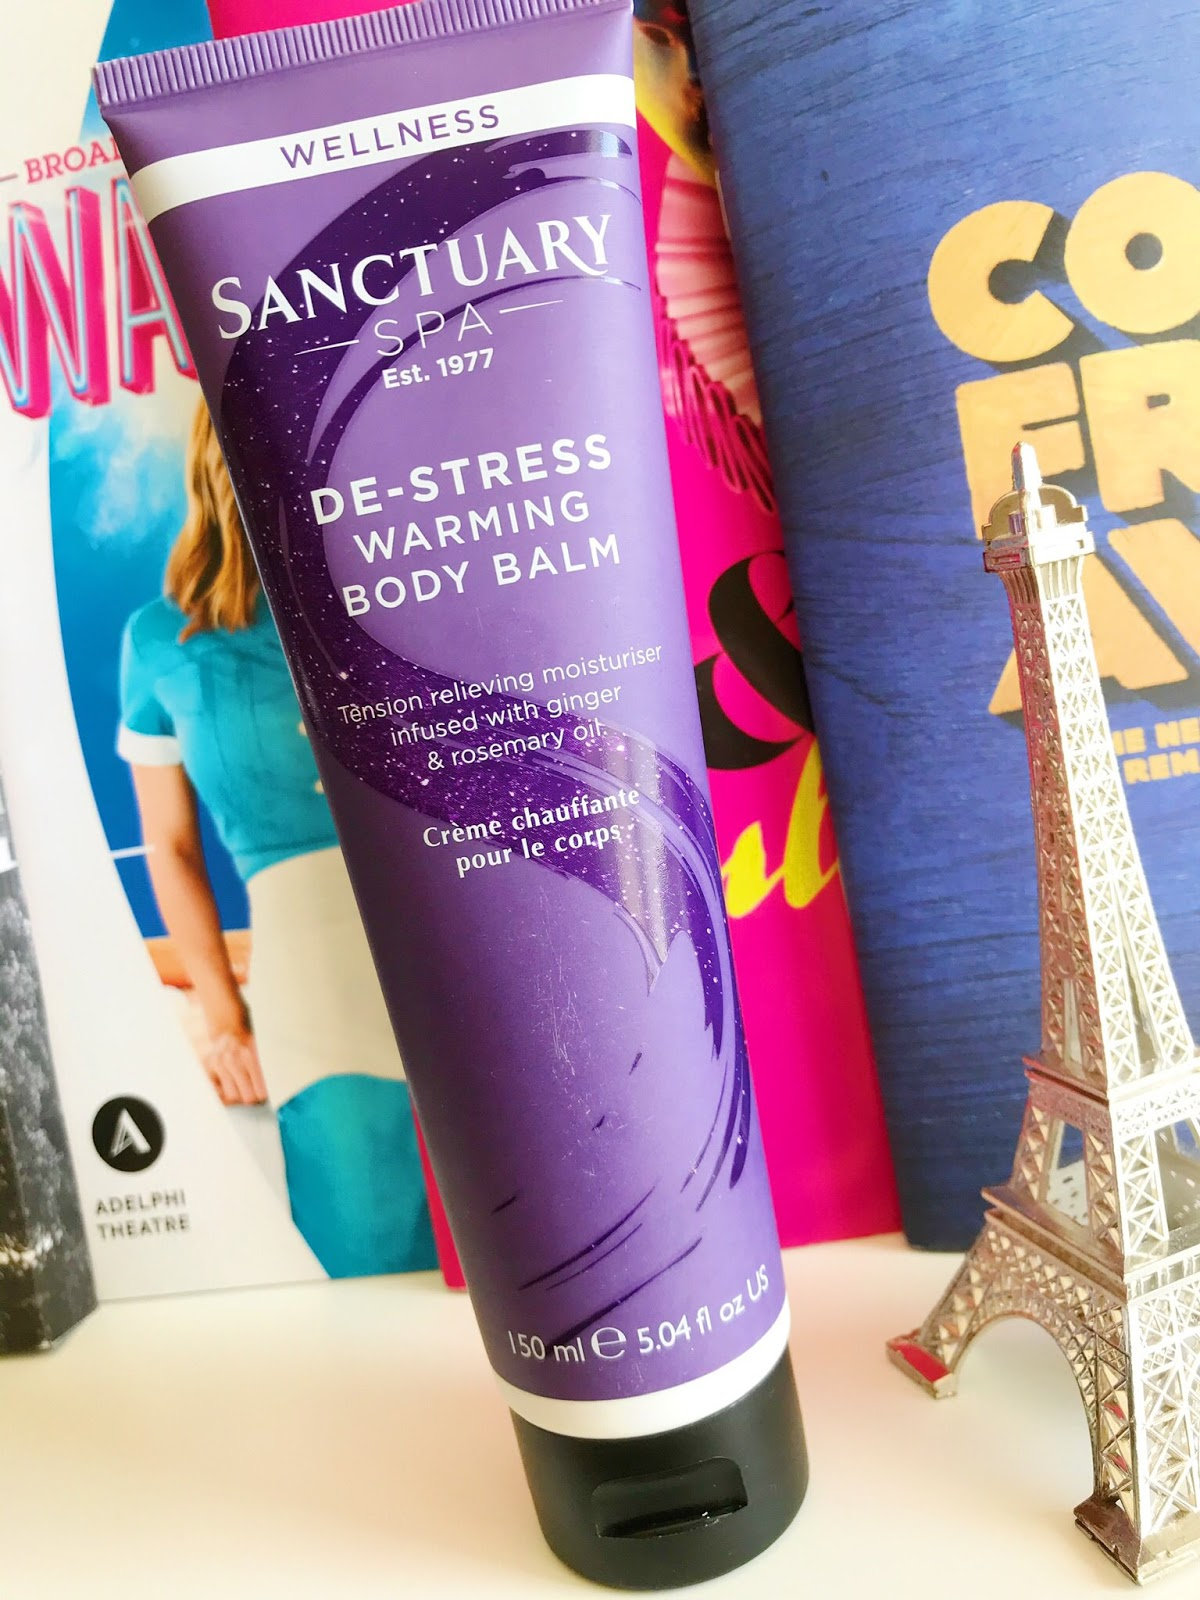 Sanctuary Spa De-Stress Warming Body Balm on desk in front of musical programs